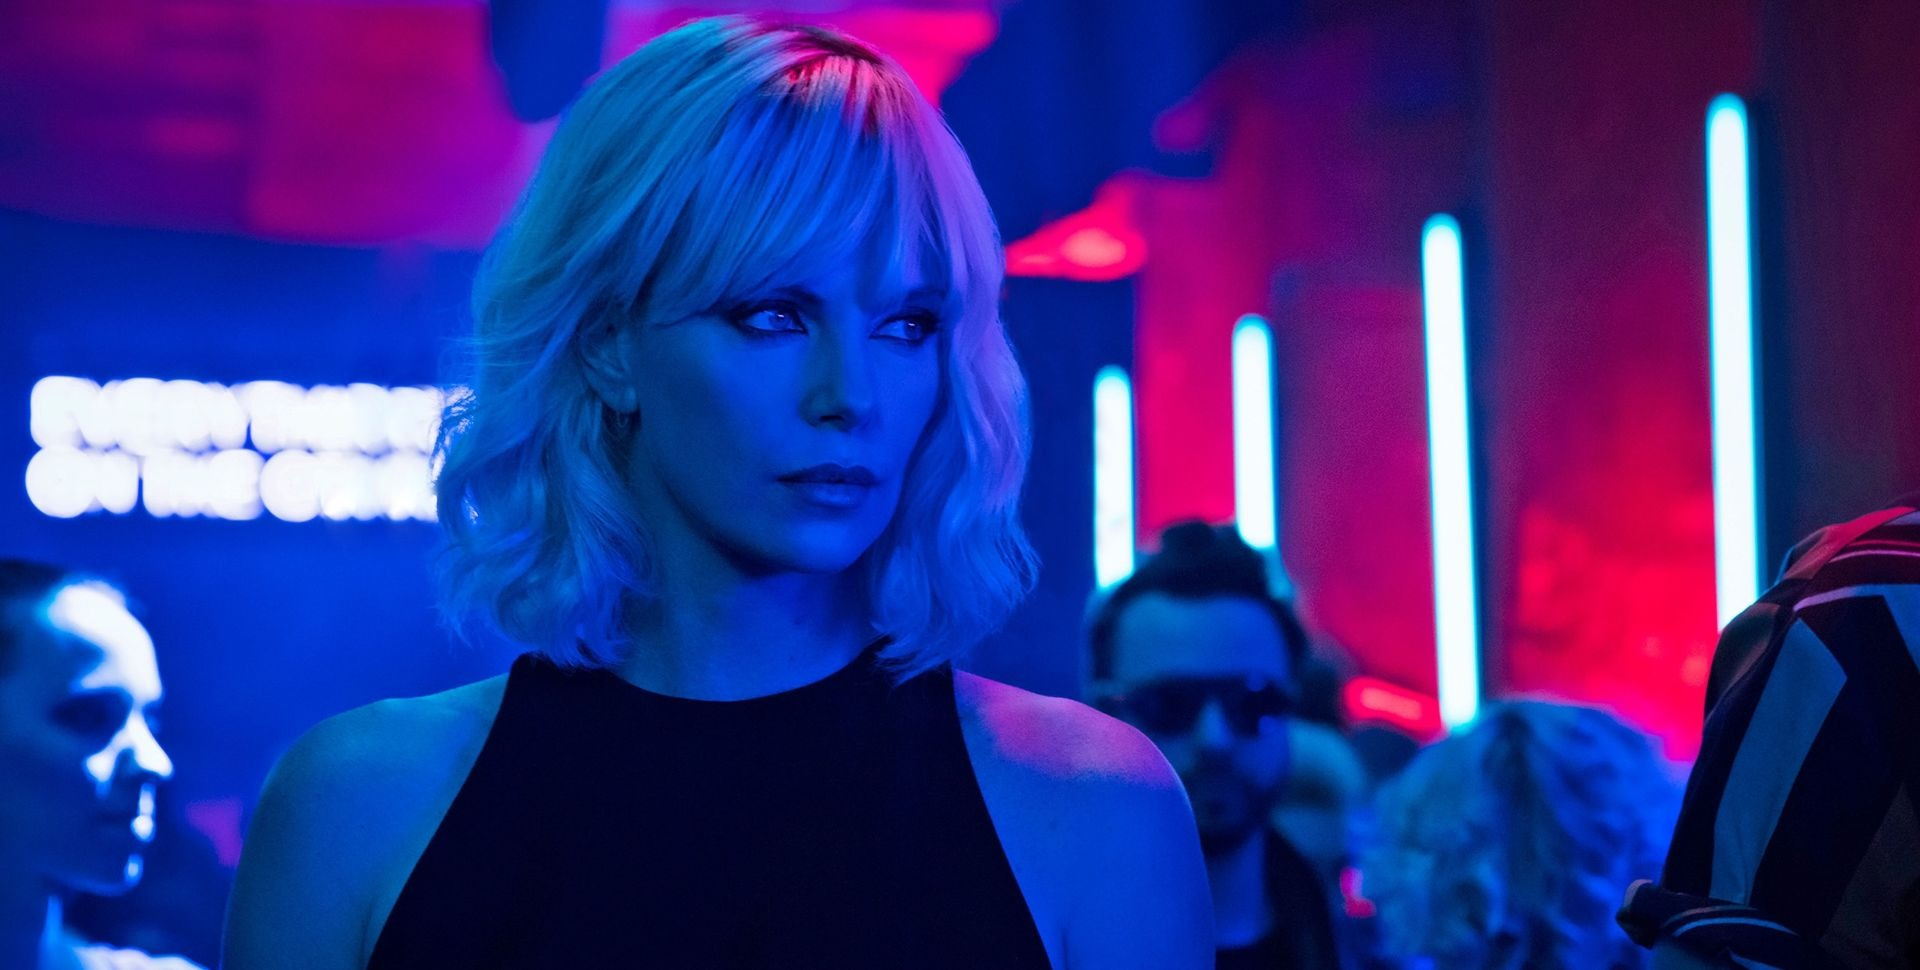 Atomic Blonde 2017 Movie Photo